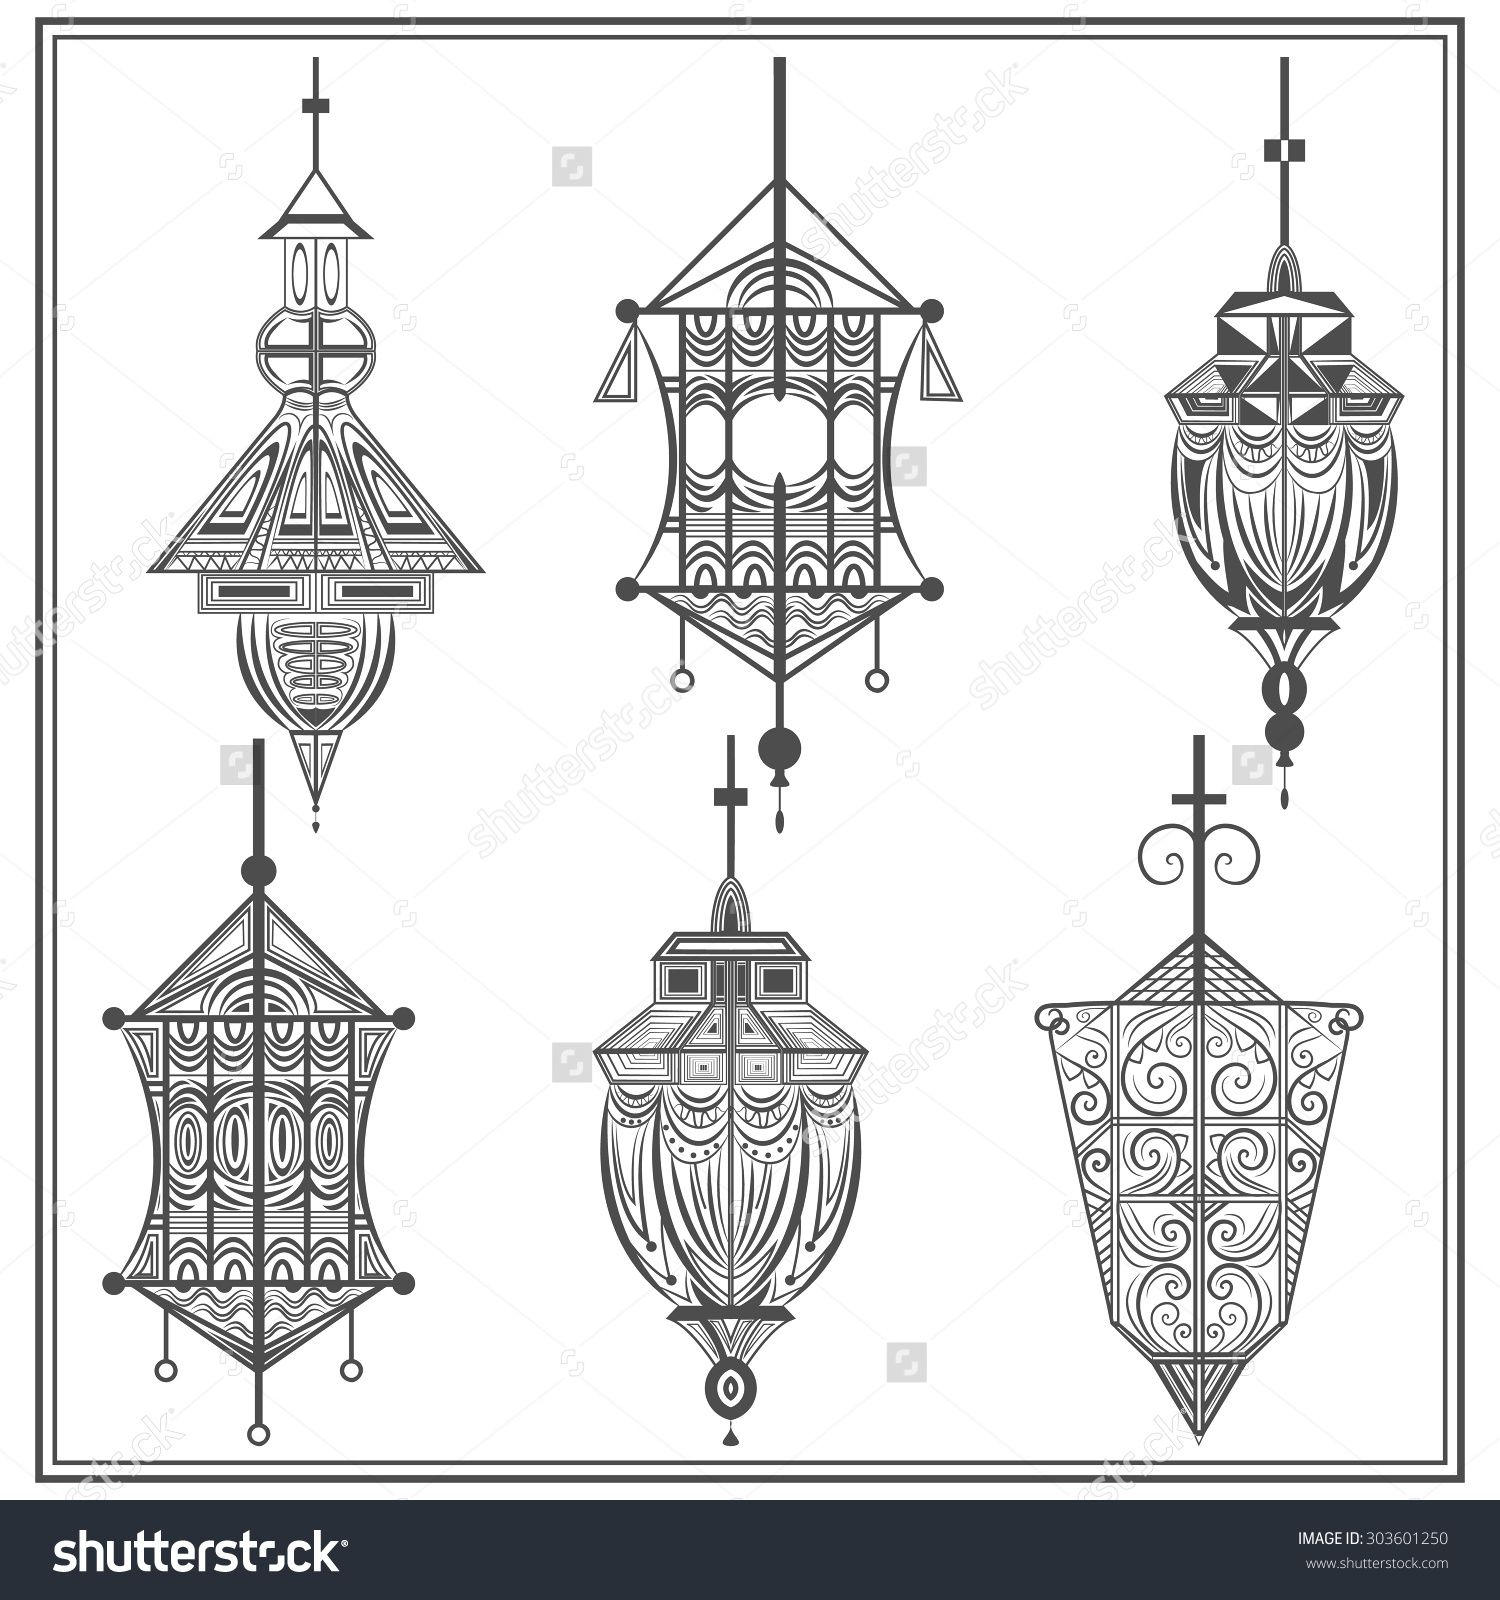 A set of elegant suspended lamps on a white background. Isolated black ethnic elements with swirls for design holiday cards, flyers, brochures. Vector illustration